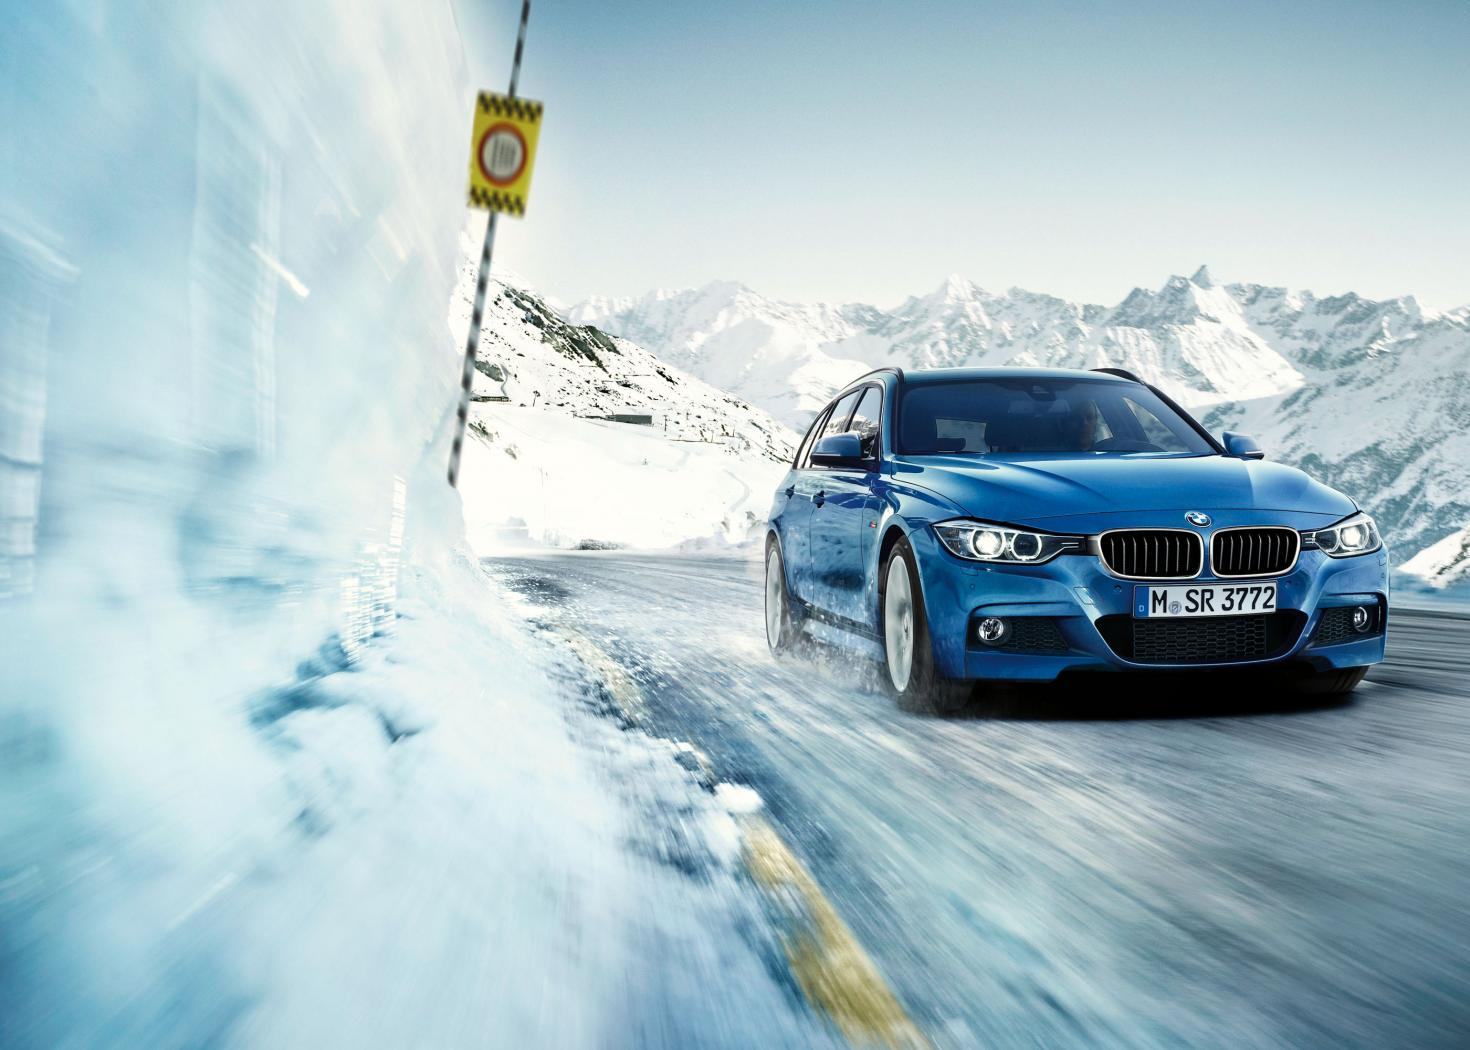 BMW-xDrive-7.jpeg